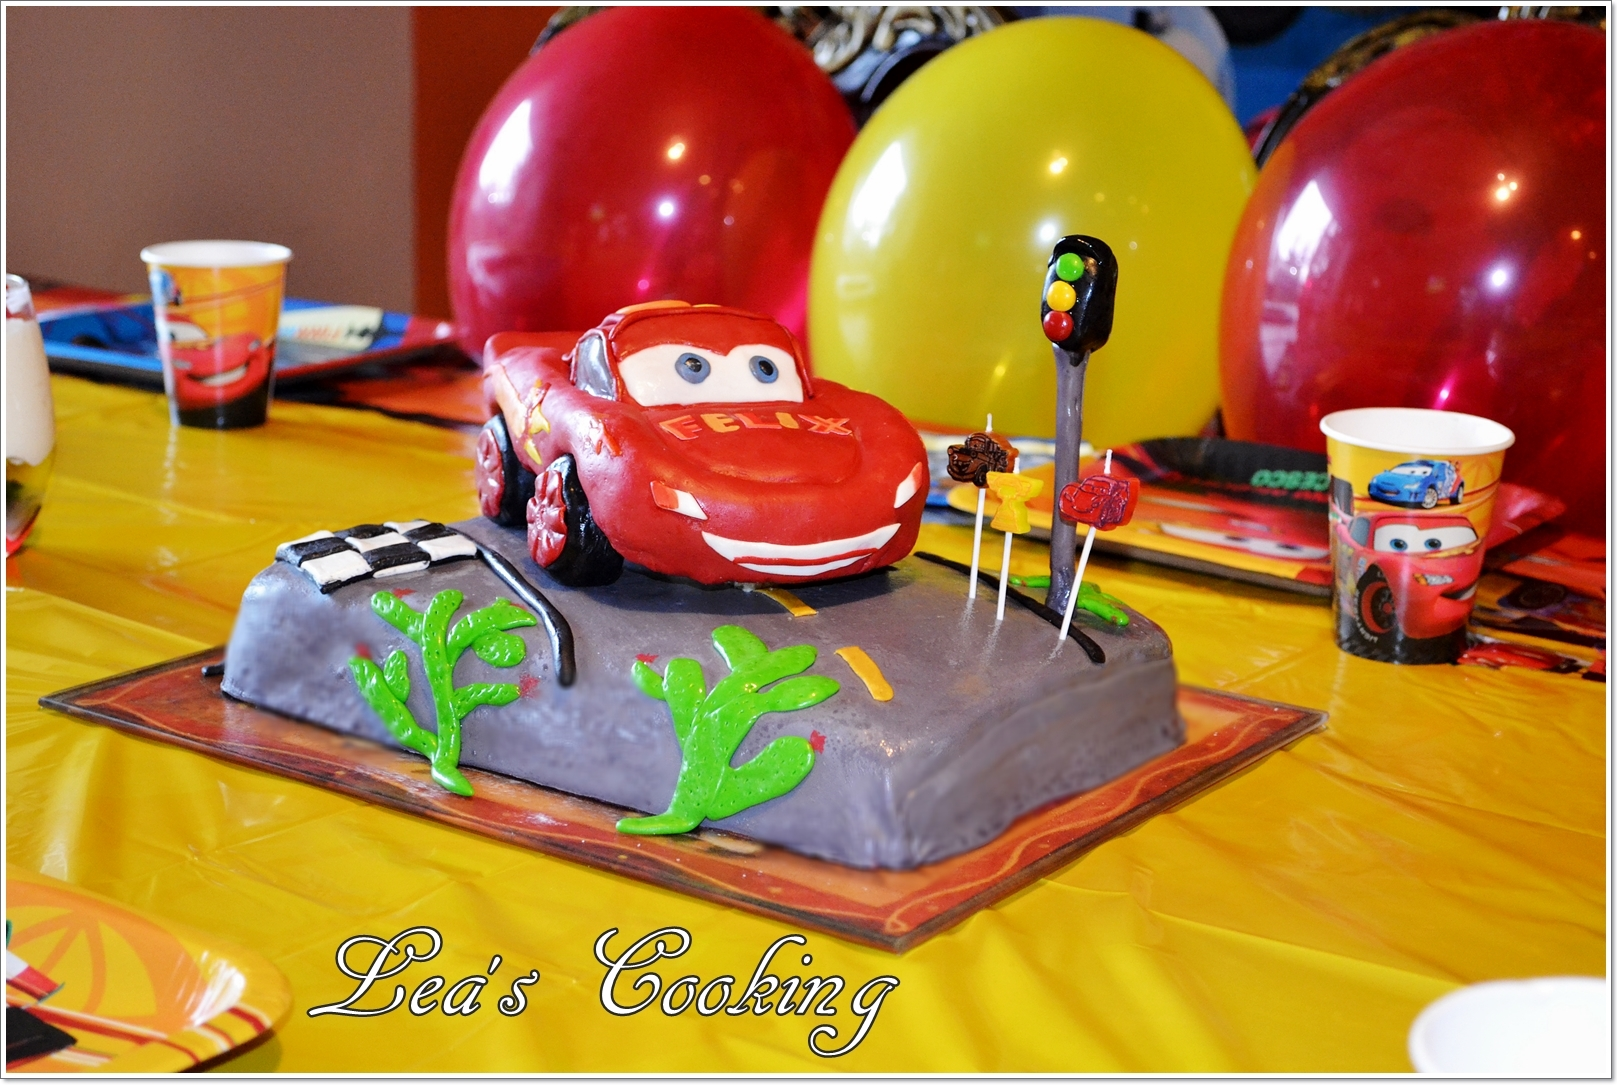 """Make a car cake by following these step-by-step instructions. Inspired by Lightning McQueen from the Disney Movie """"Cars"""". Make your kid's birthday cake special. I have a tutorial posted on my blog http://leascooking.blogspot.com/2013/01/cars-lightning-mcqueen-cake-topper.html."""